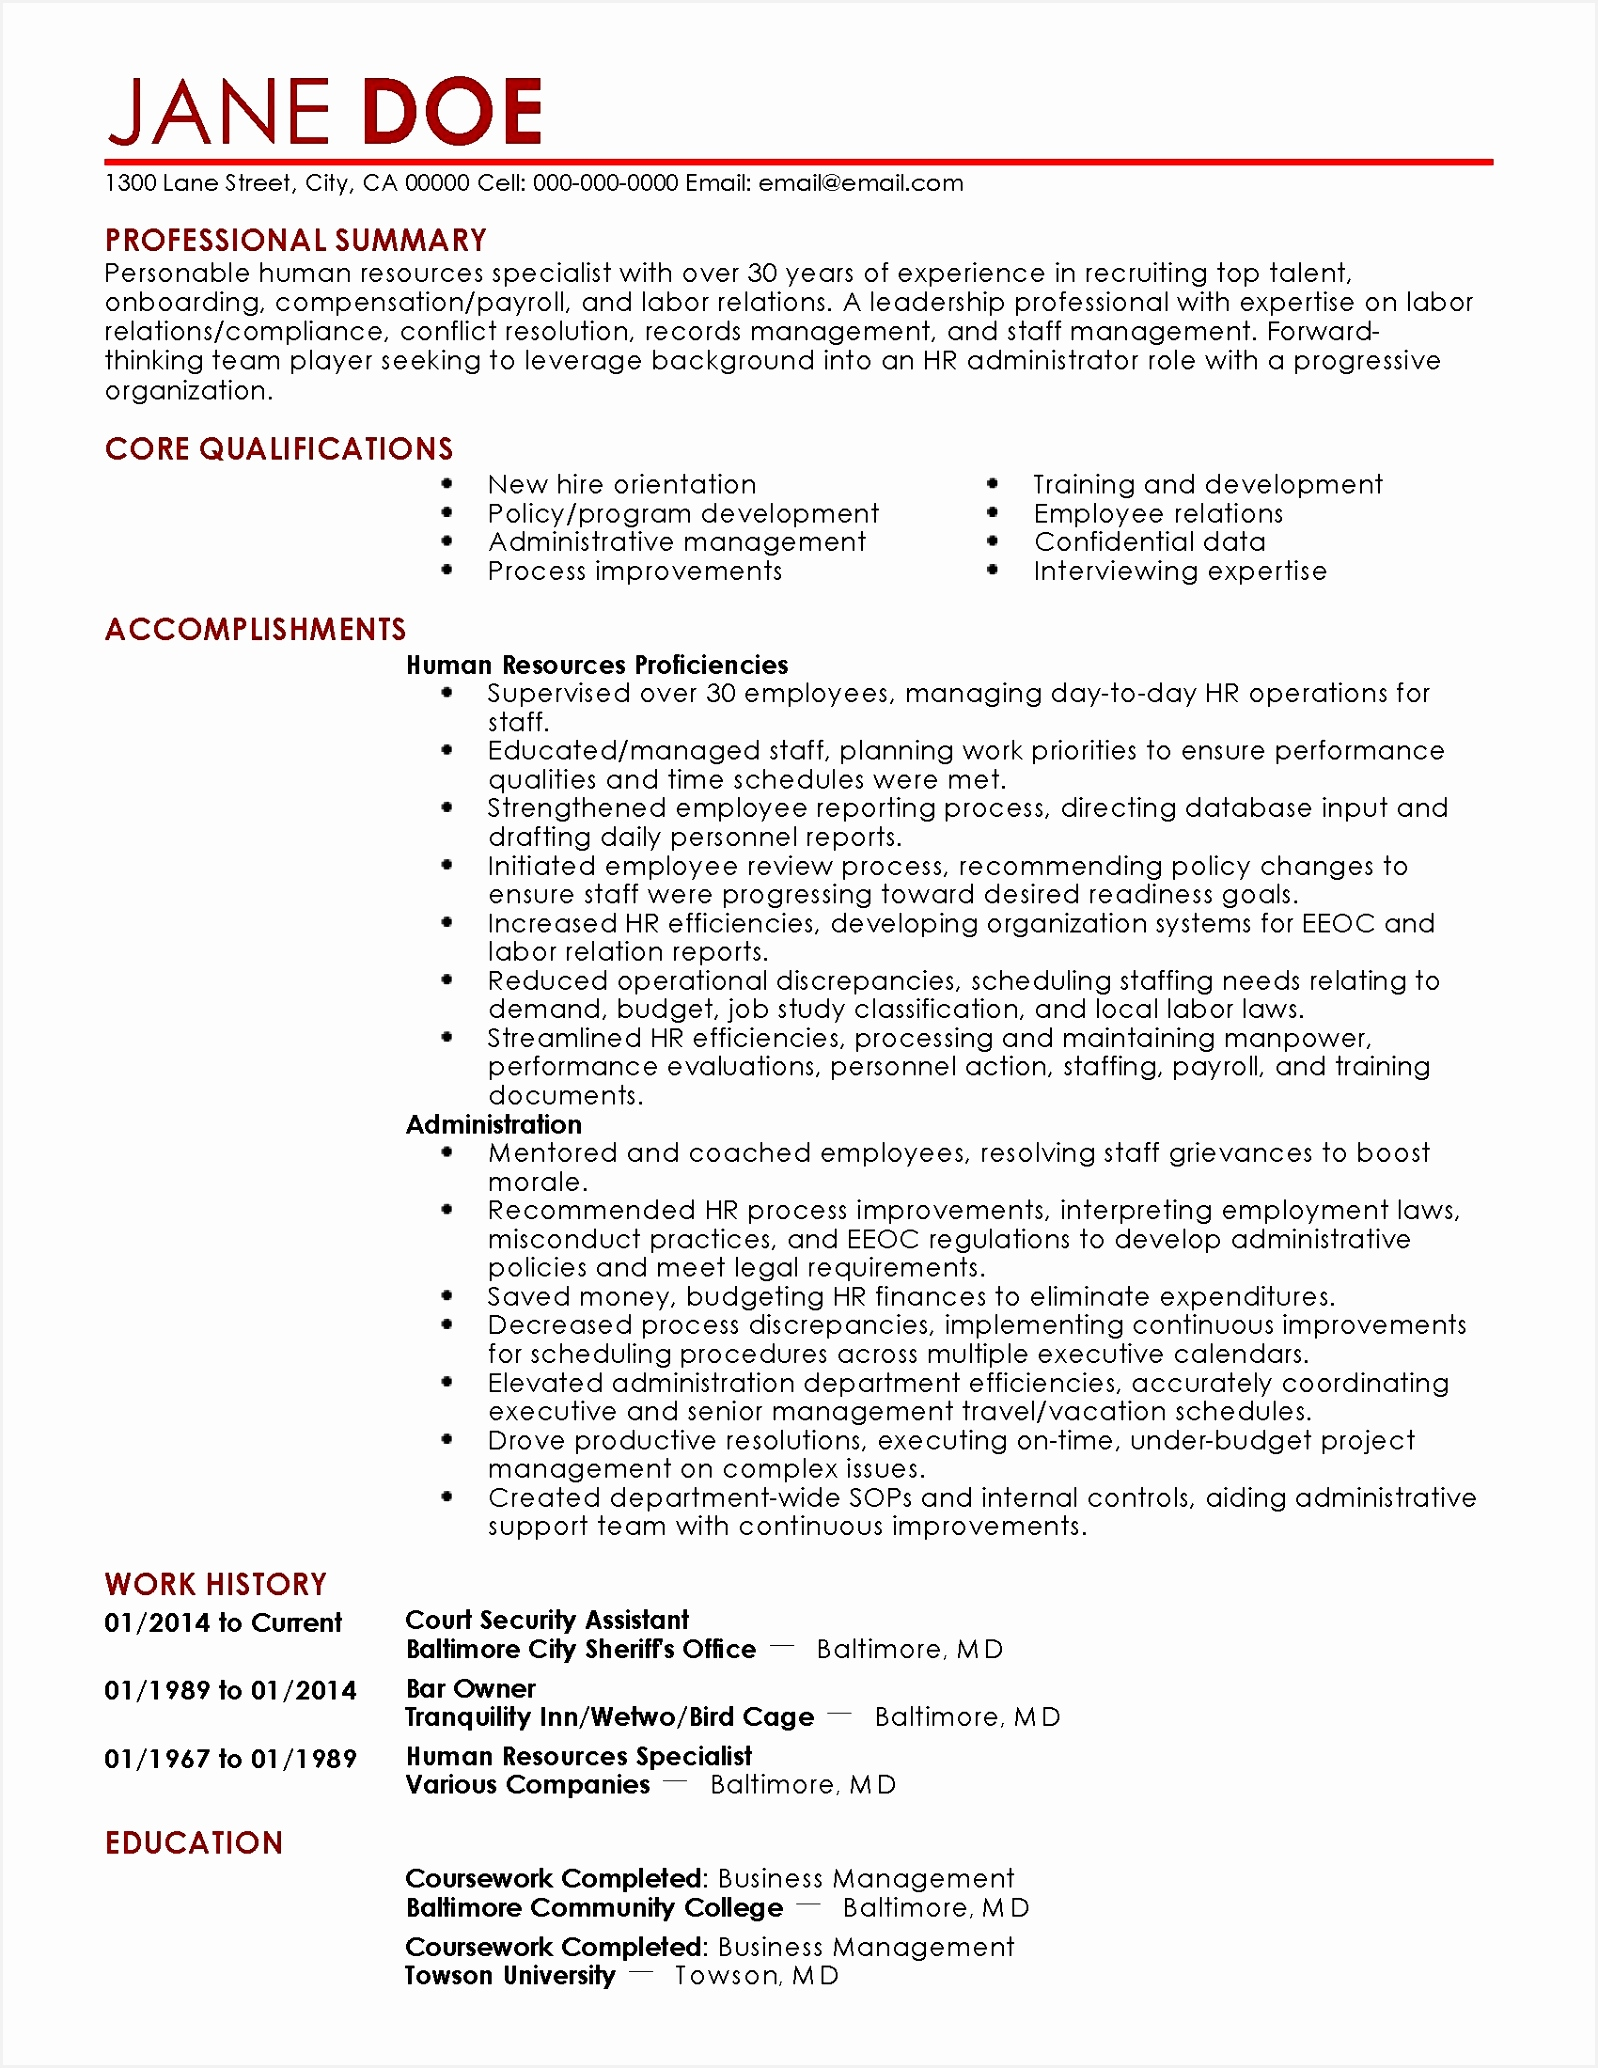 Medical Resume Template Download Sryub Fresh 10 Resume Template Medical assistant Collection Of 4 Medical Resume Template Download